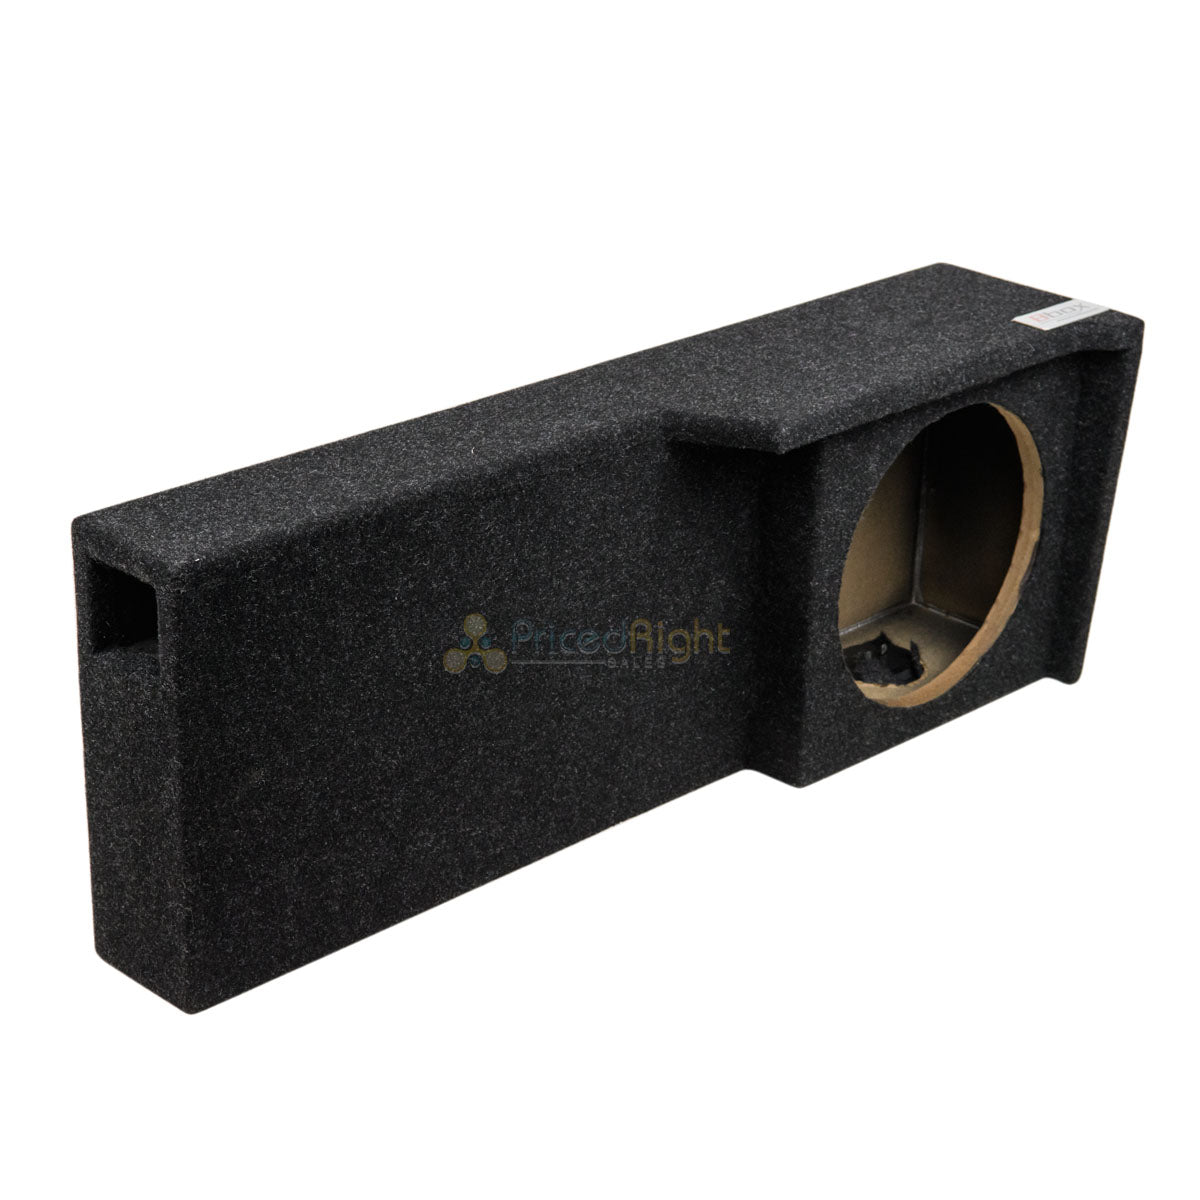 "Single 10"" Sub Enclosure Box Vented 04-08 Ford F150 Super Crew/Extended Cab"